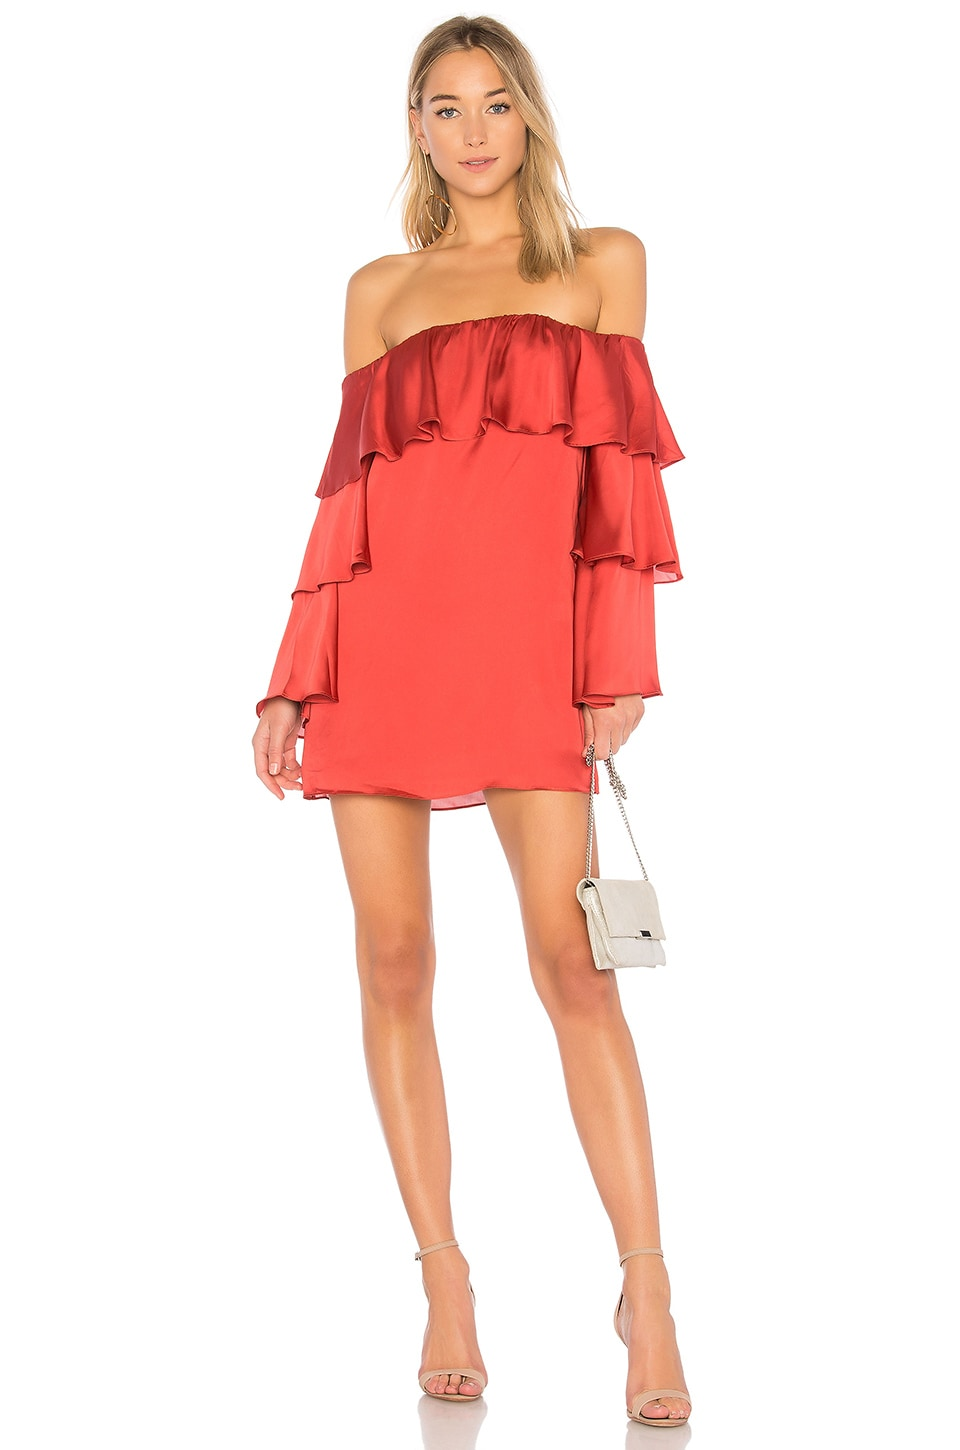 Lovers + Friends x REVOLVE Etra dress in Strawberry